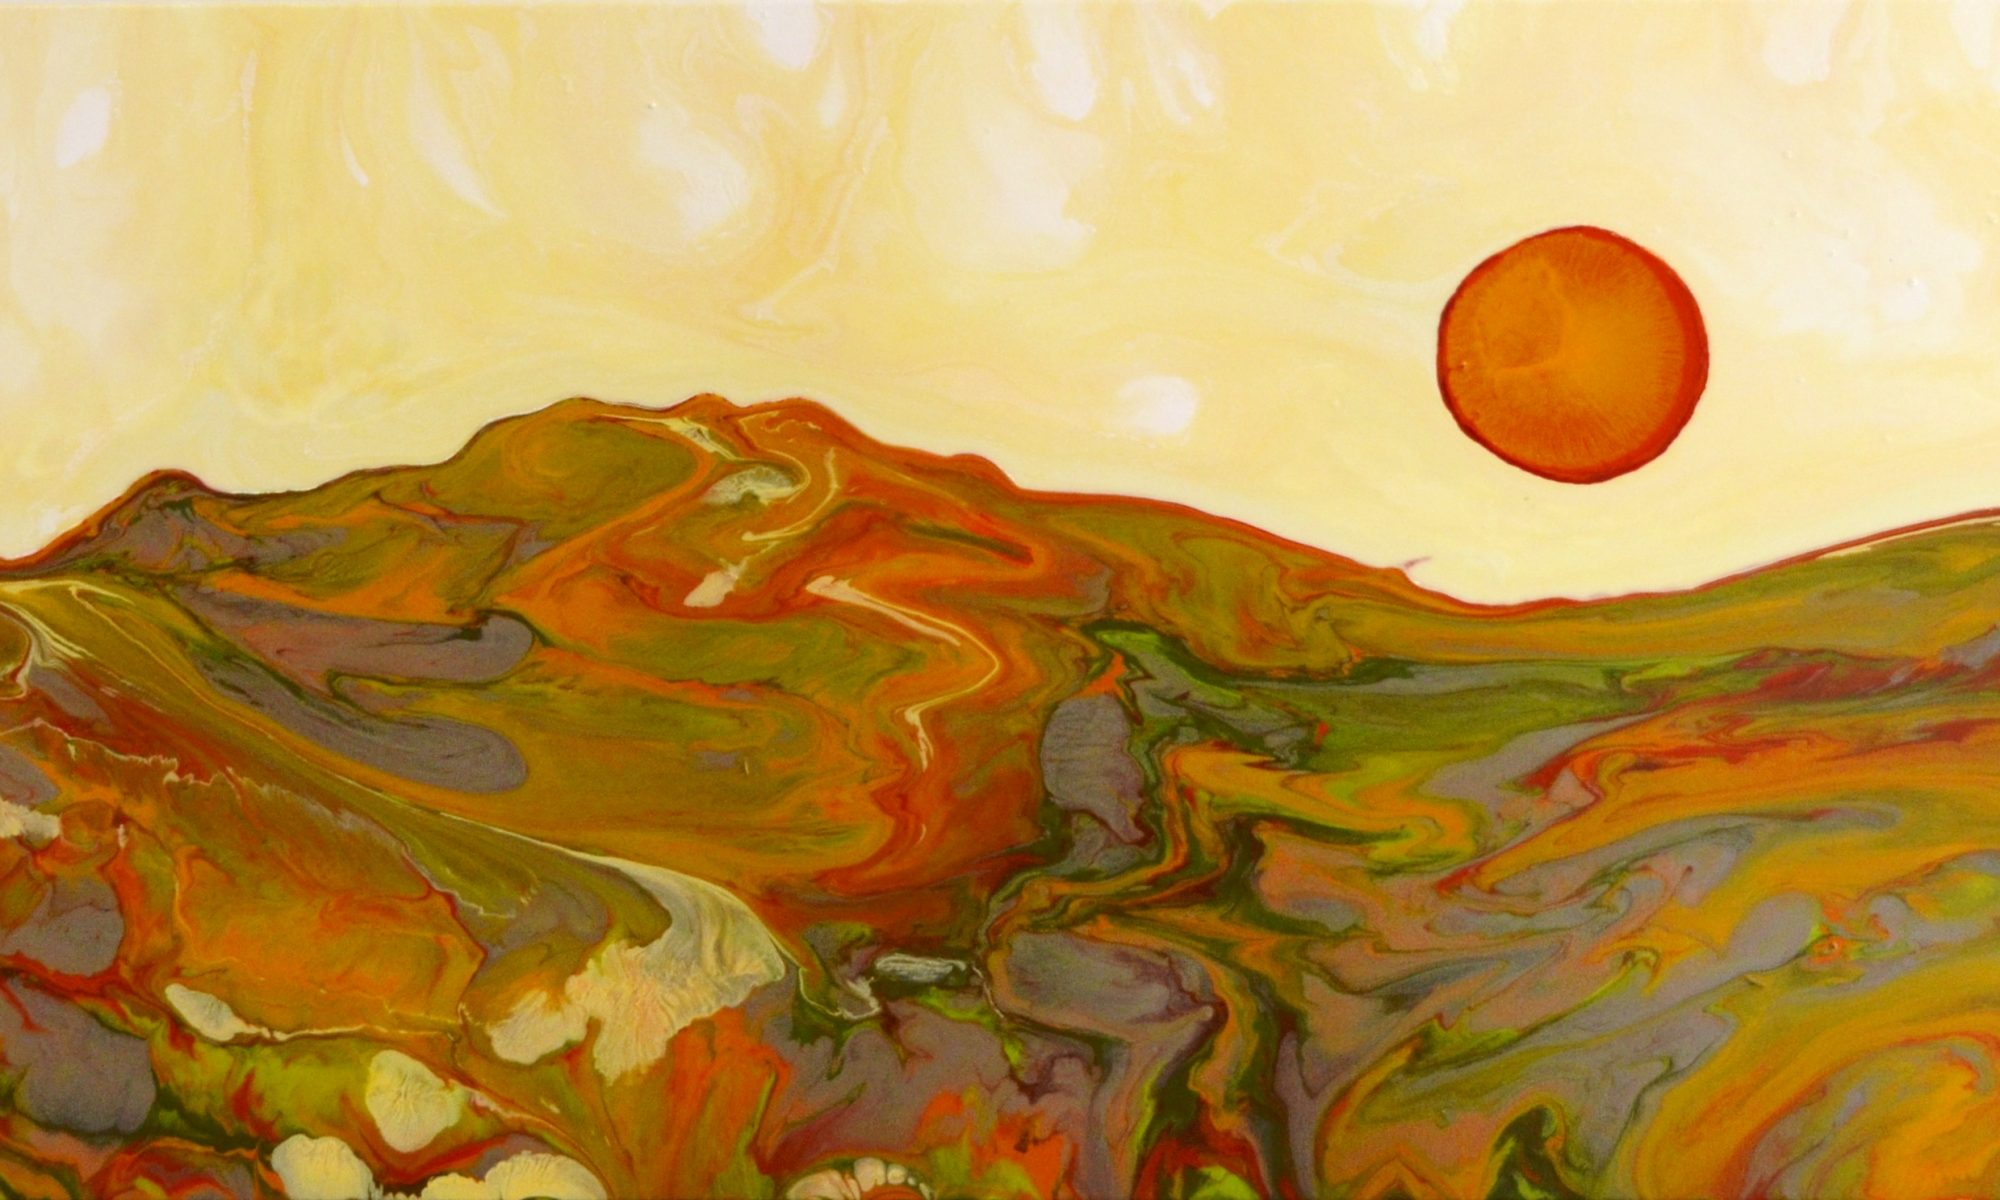 A landscape in oranges and greens with a yellow sky. A red giant sun floats in the sky with a white-blue moon off to the left. Original artwork by Anna Loscotoff.